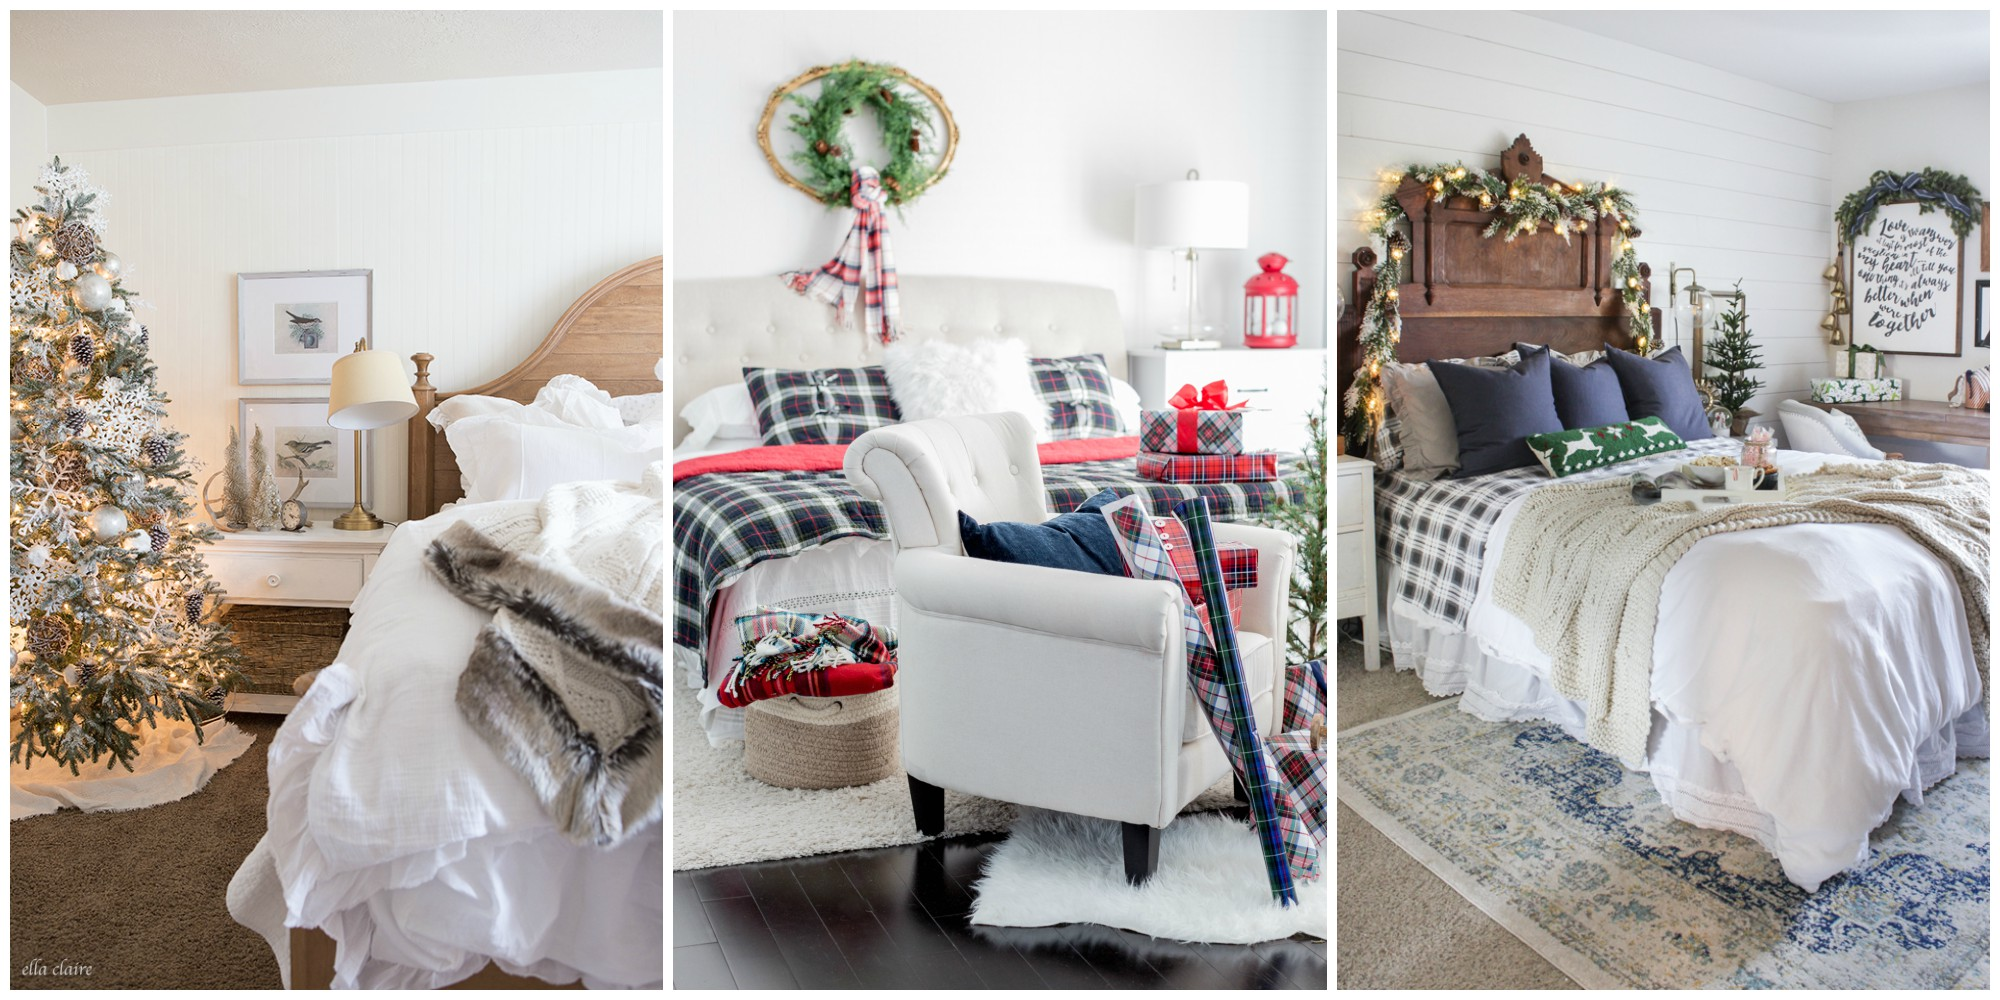 Christmas Decorations To Make For Your Bedroom : Christmas bedroom decorating ideas farmhouse